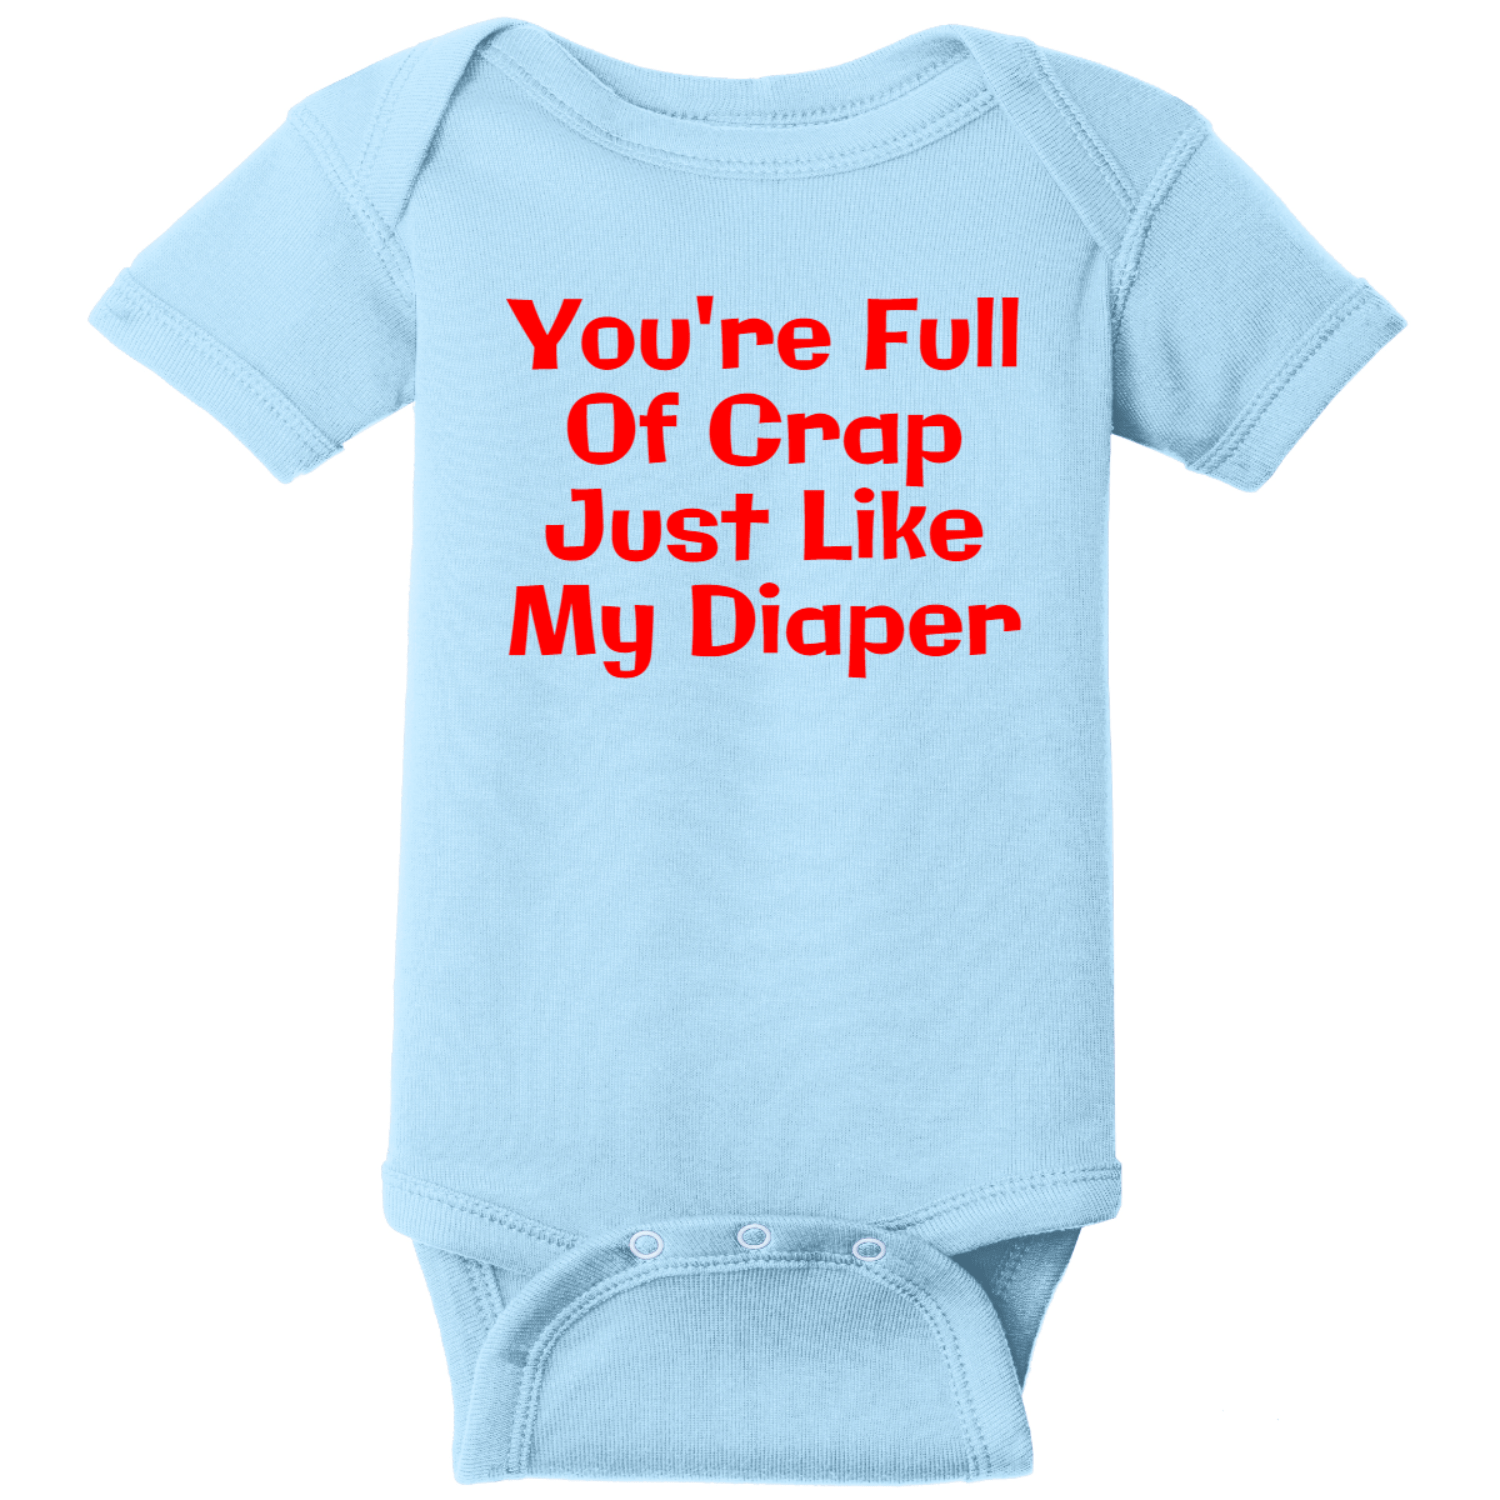 You Are Full Of Crap Like My Diaper Baby Bodysuit Light Blue Rabbit Skins Infant Short Sleeve Infant Rib Bodysuit RS4400